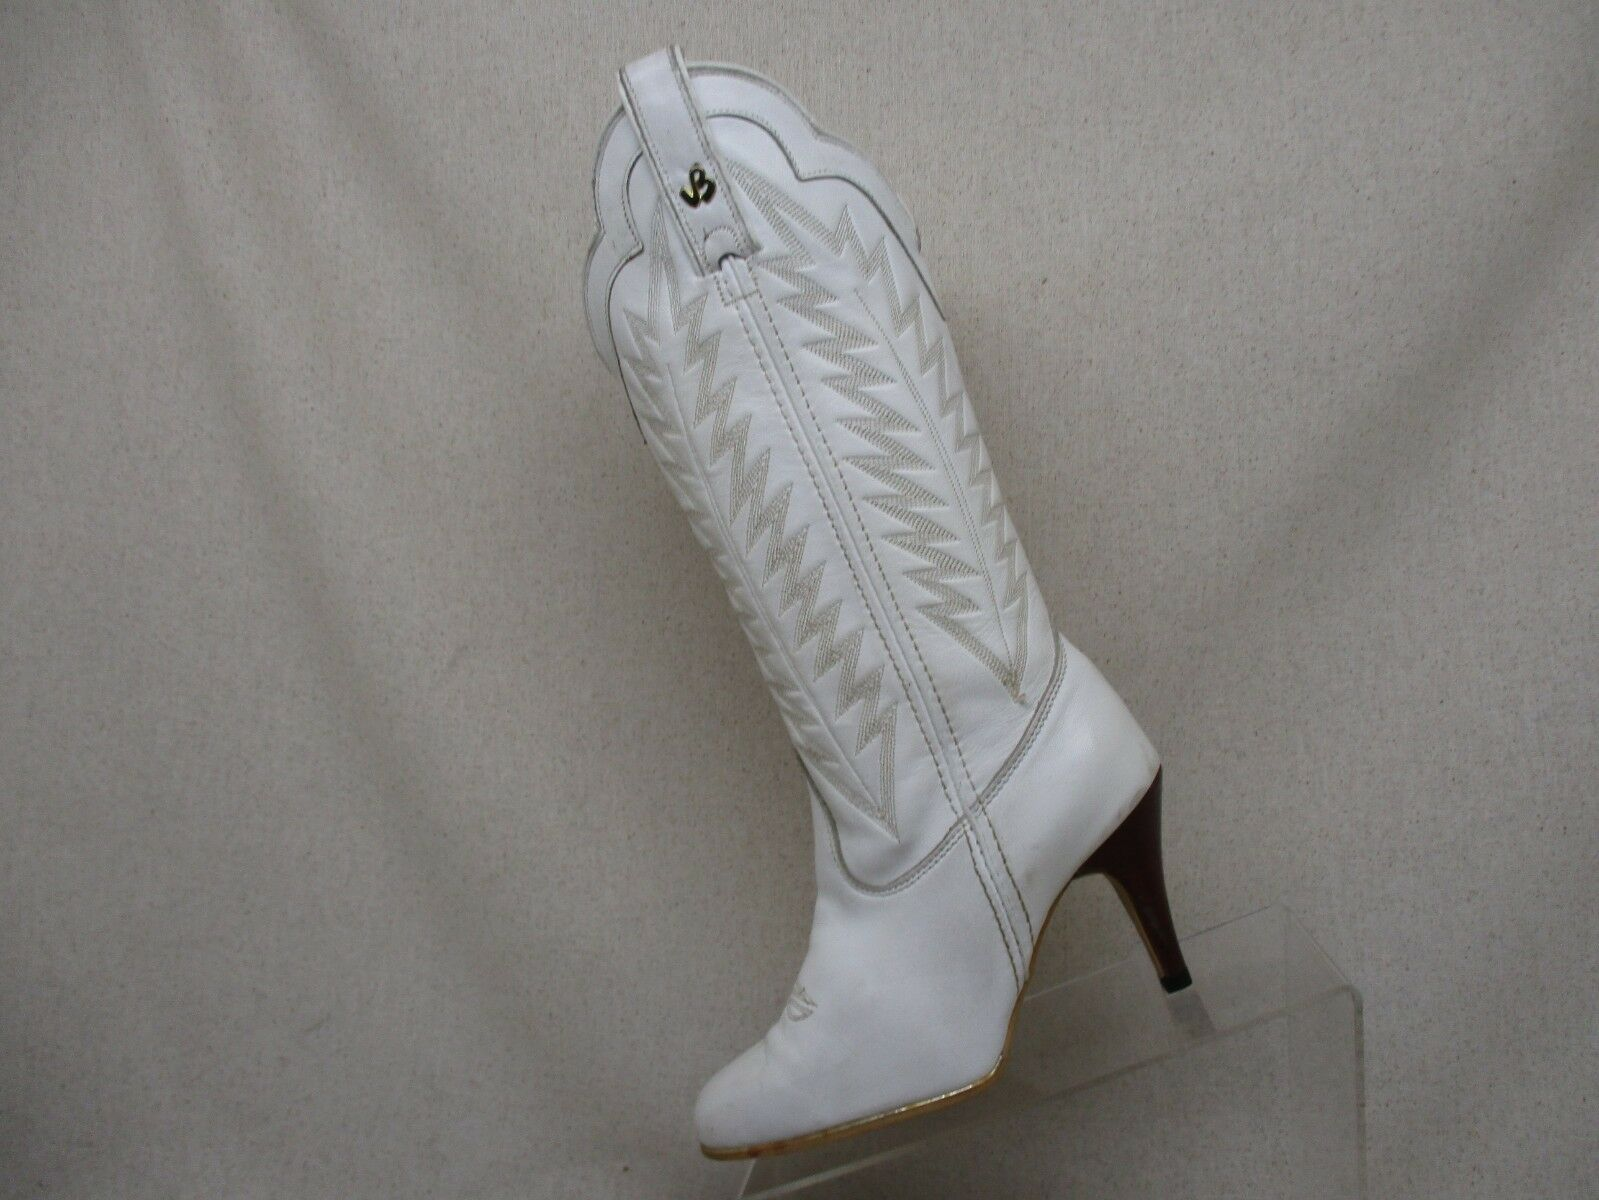 JEENZ BOOTZ White Leather Cowboy Western Fashion Boots Womens Size 5.5 M - 507